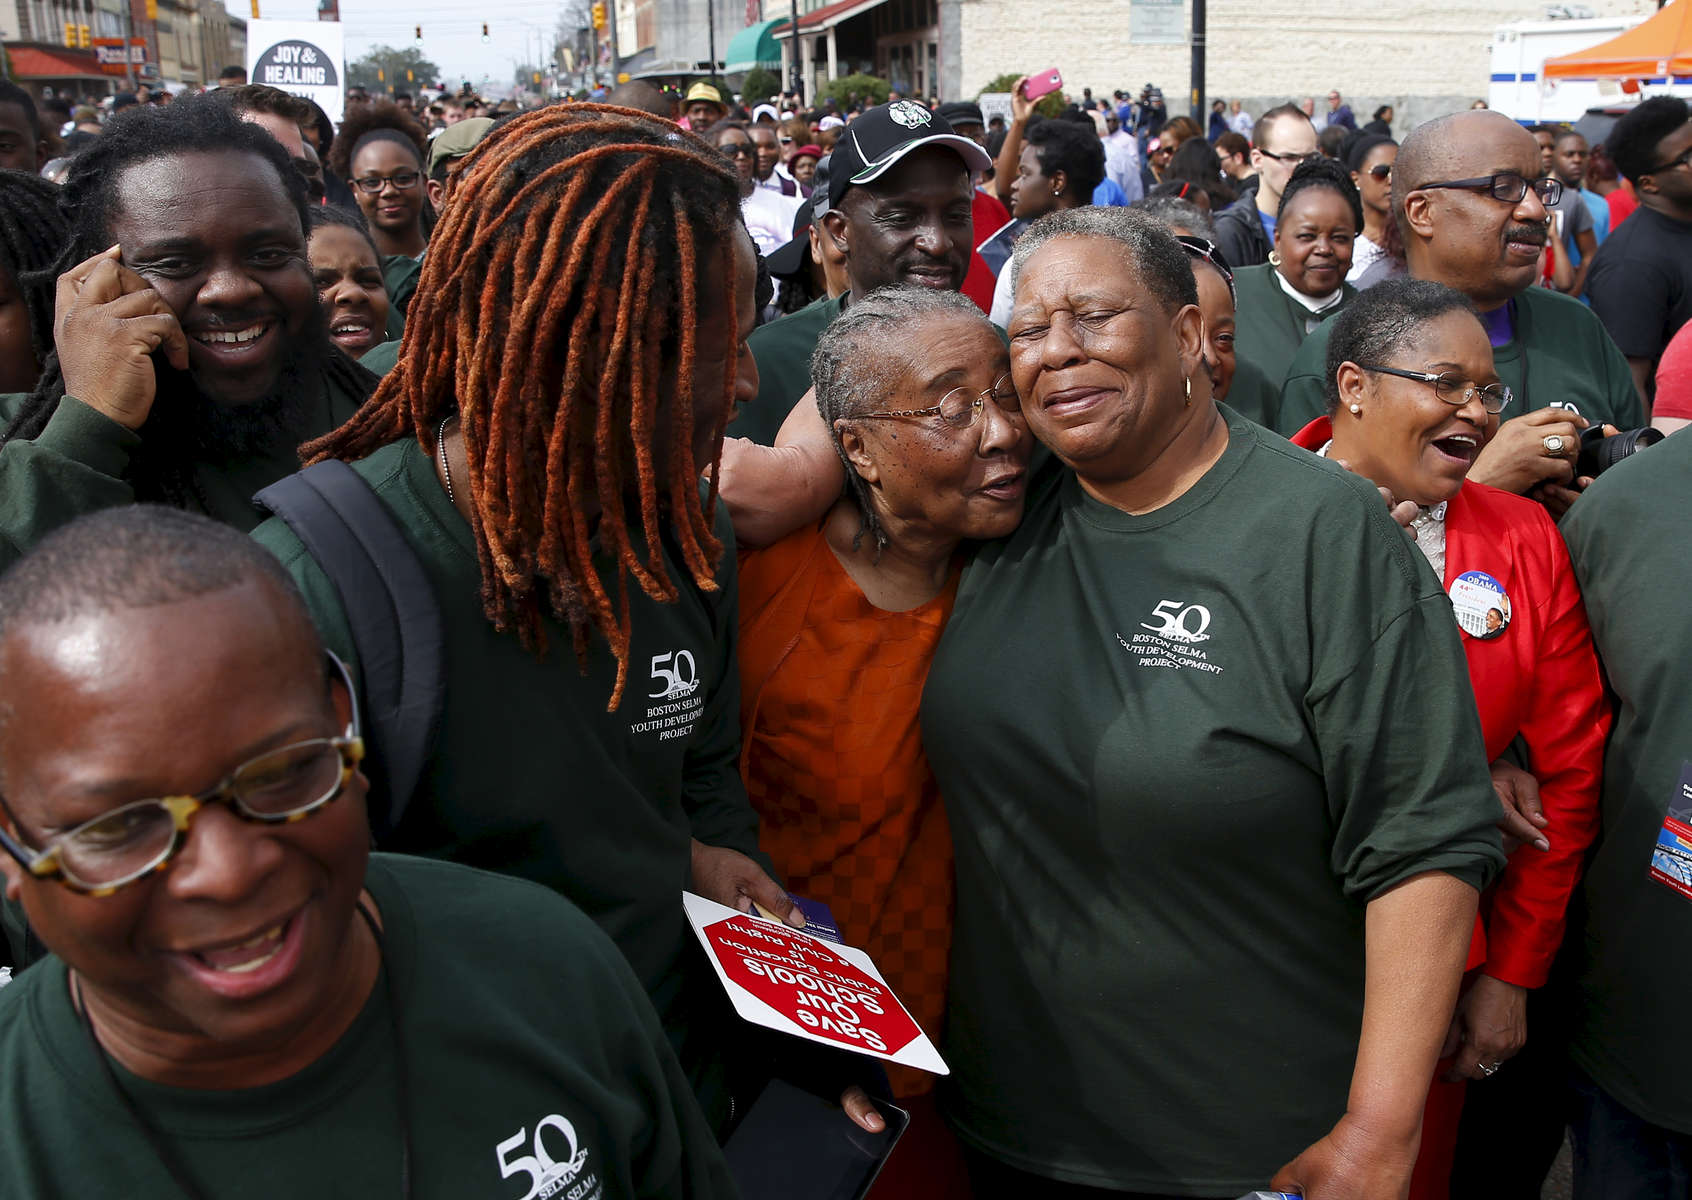 Selma, Alabama -- 3/08/2015-- (L-R) Kevin Peterson of the New Democracy Coalition, UMass student Vonds Dubuisson, 27, smile as Gloria Patterson, of Detroit hugs Joanne Bland, of Selma who was one of the original marchers  who marched with Dr. Martin Luther King, Jr. over the Edmund Pettus Bridge on Bloody Sunday, as her older sister, Lynda Blackman Lowery laughs as Patterson appears on a documentary playing out over the crowd of people ready to retrace the steps of those who marched with Dr. Martin Luther King, Jr. over the Edmund Pettus Bridge 50 years ago in Selma, Alabama March 8, 2015. Jessica Rinaldi/Globe StaffTopic: 09selmaReporter: